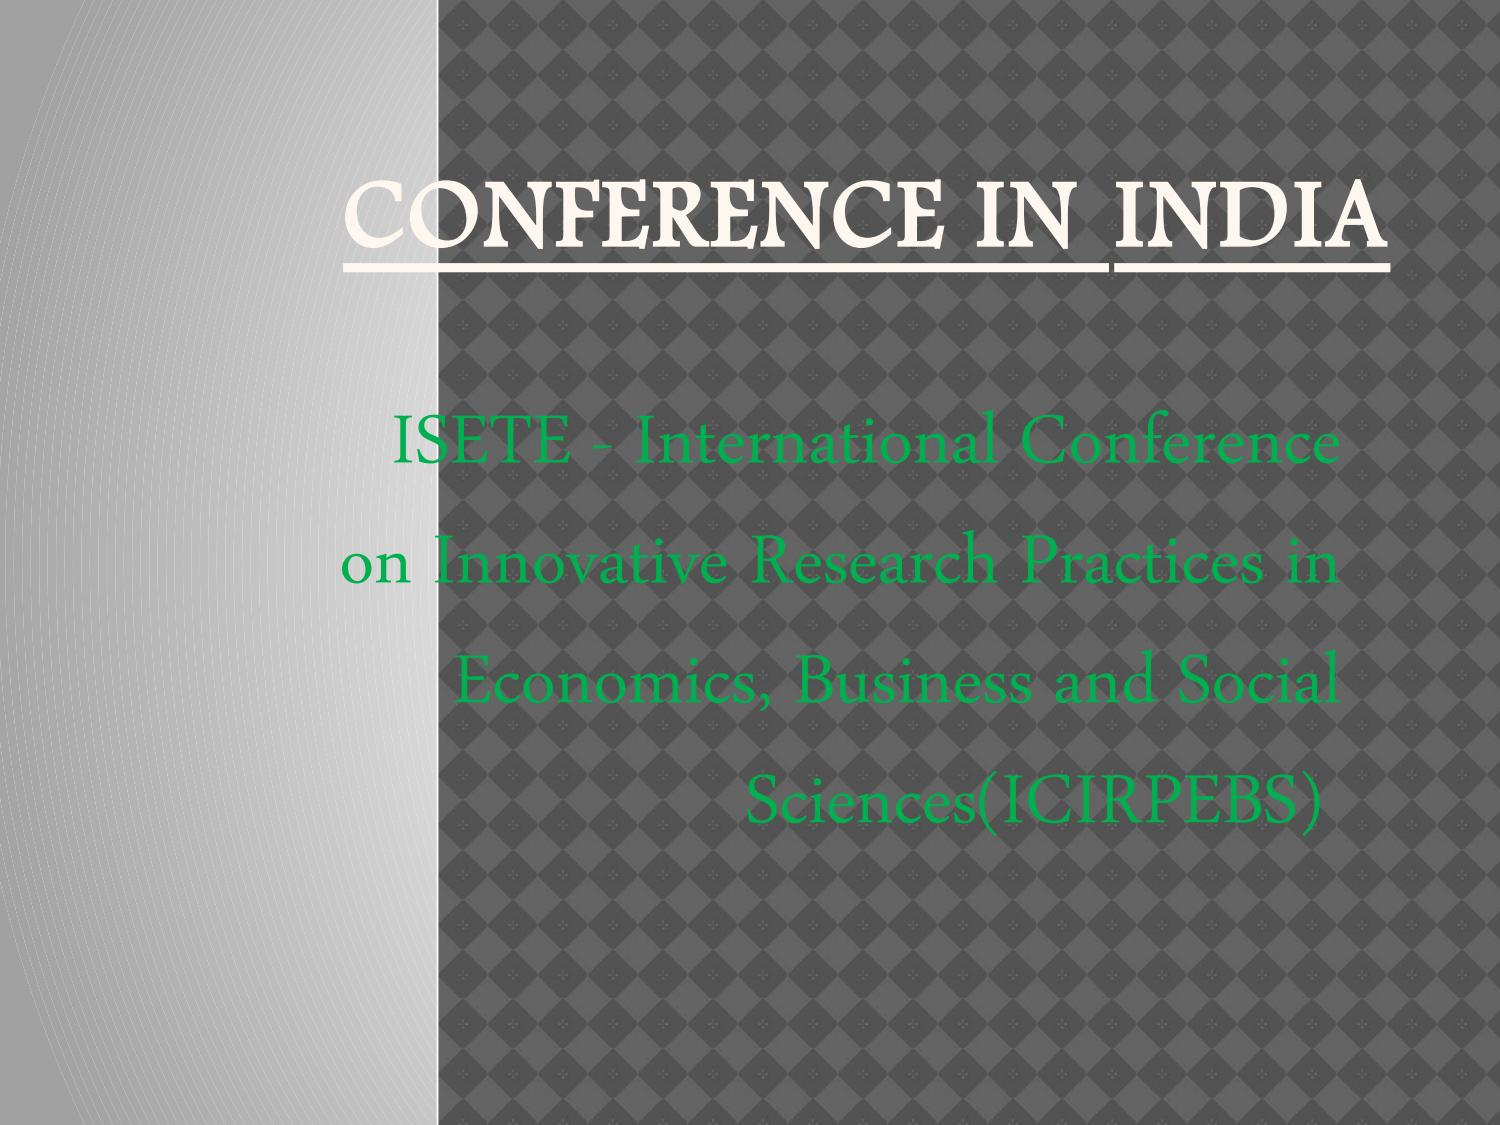 Conference Alerts India by conference Alerts - issuu